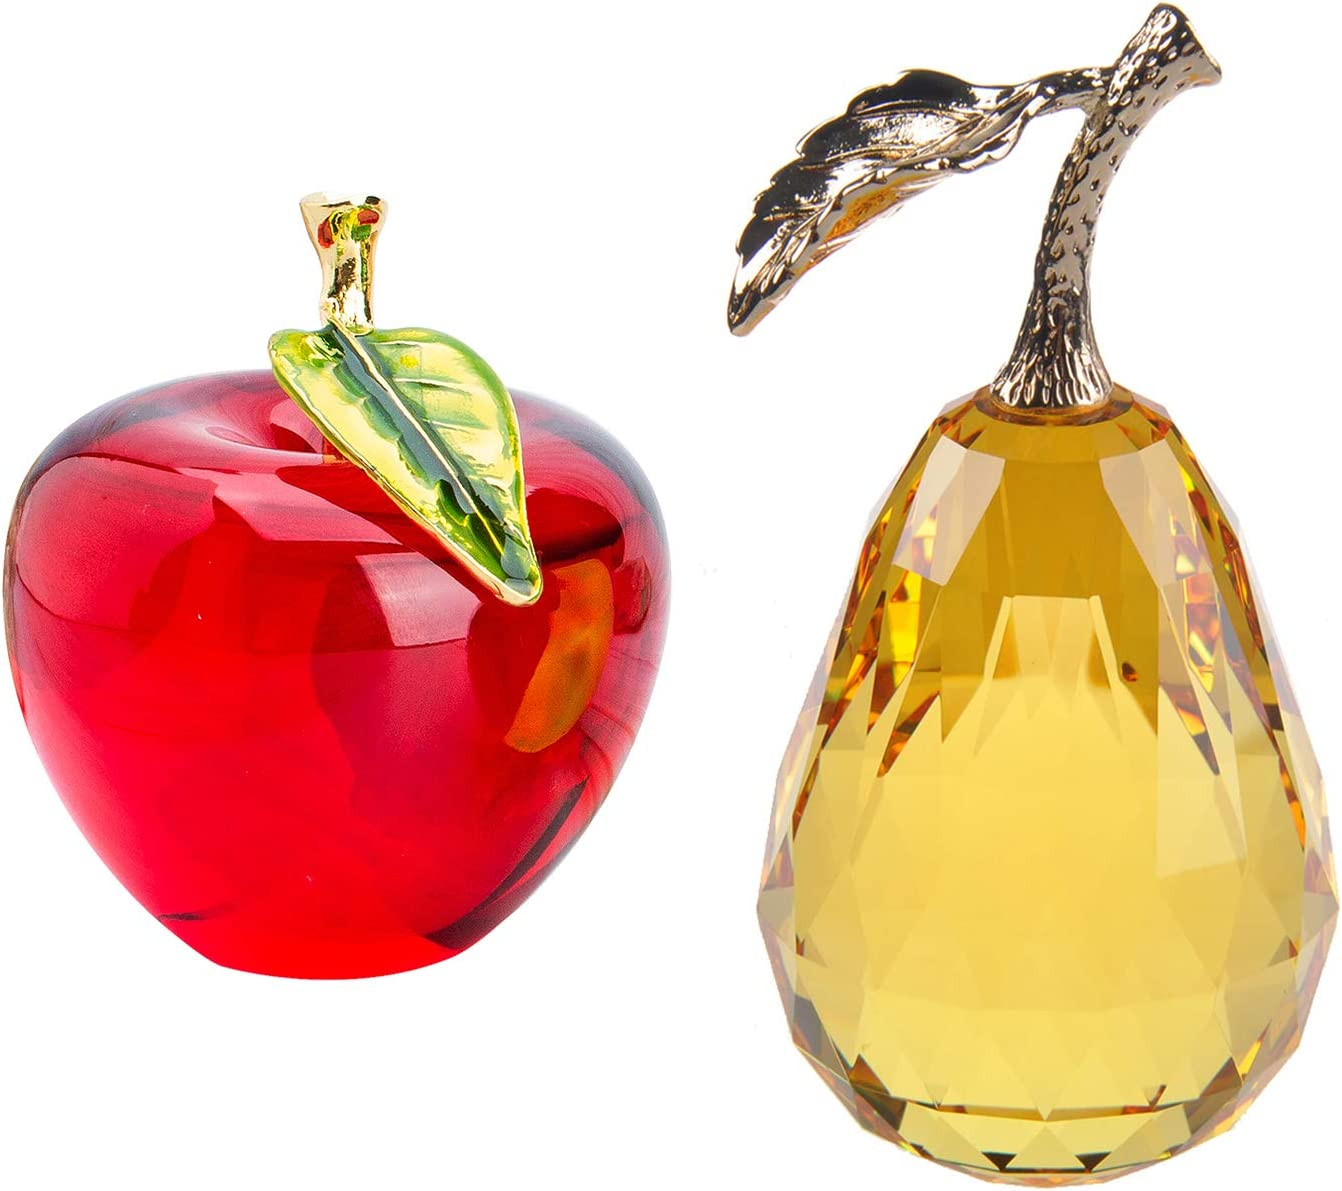 H/&D HYALINE /& DORA Crystal Paperweight,Crystal Glass Red Apple Pear Figurine Table Decor Ornament